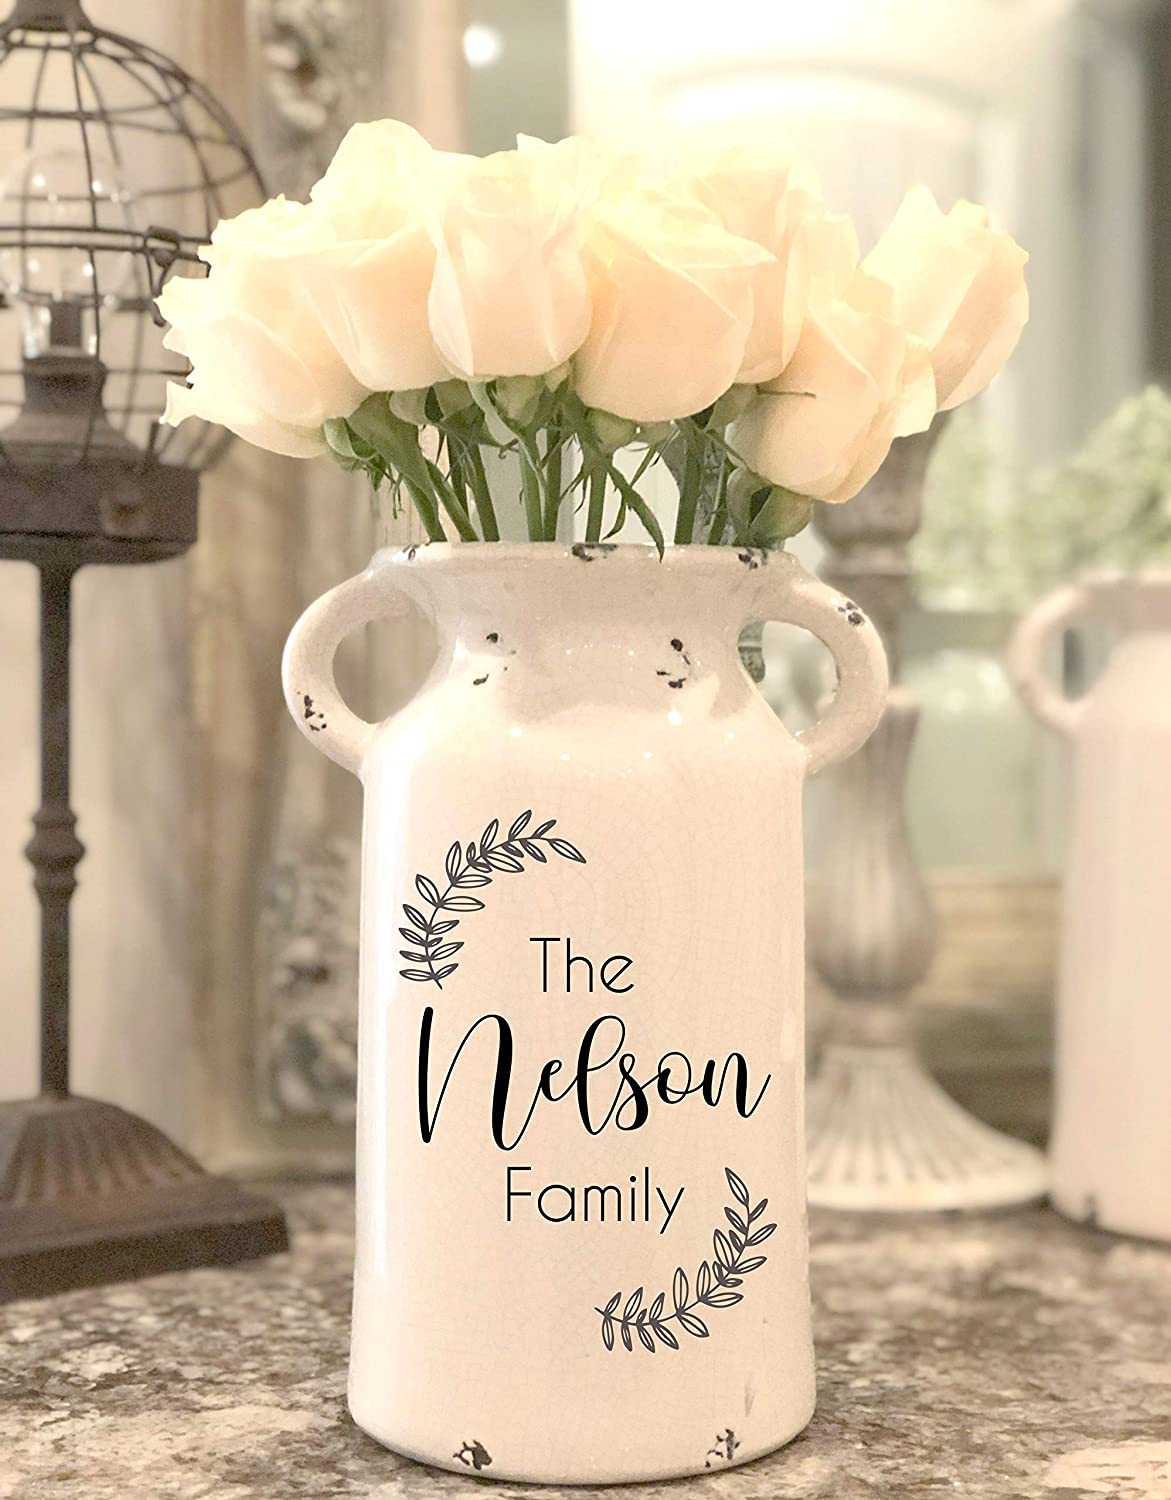 Personalized Wedding Gifts Personalized Ceramic Milk Can Housewarming Gift Farmhouse Milk Can Personalized Flower Vase Personalized Milk Can Handmade Products Home Kitchen